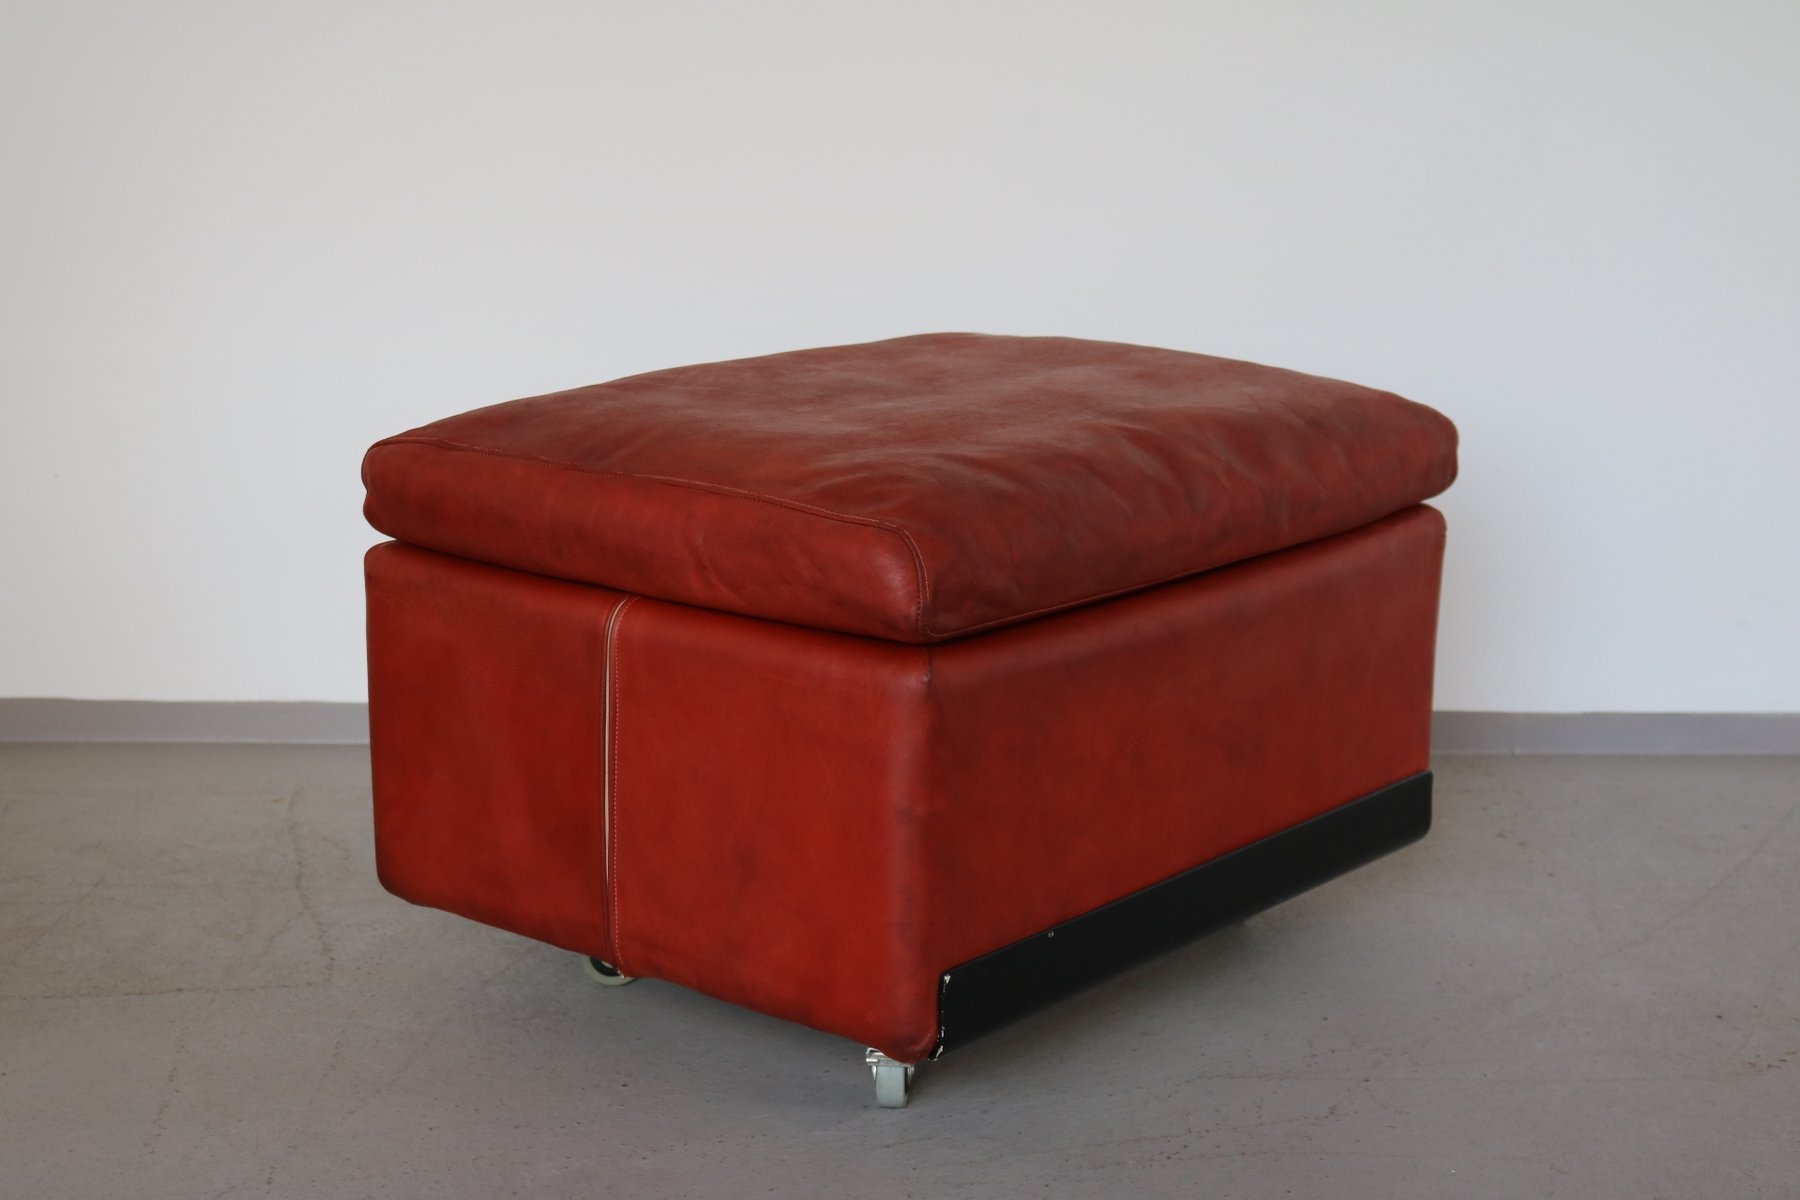 620 Highback Leather Lounge Chair U0026 Ottoman By Dieter Rams For Vitsoe,  1960s 12. $2,431.00. Price Per Set